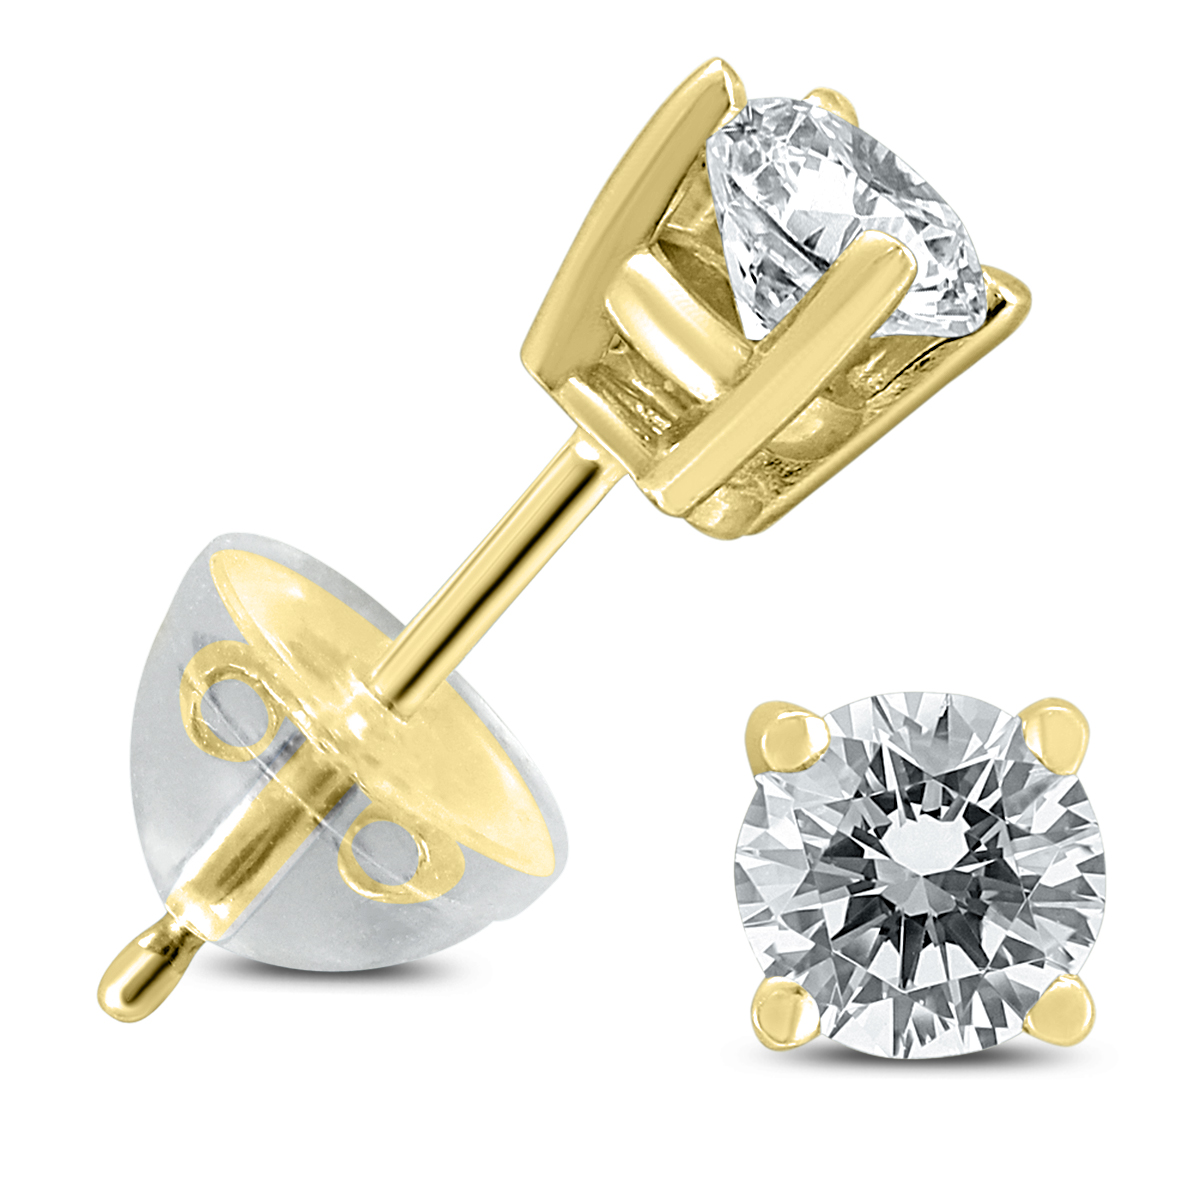 .55CTW Round Diamond Solitaire Stud Earrings In 14k Yellow Gold with Silicon Backs